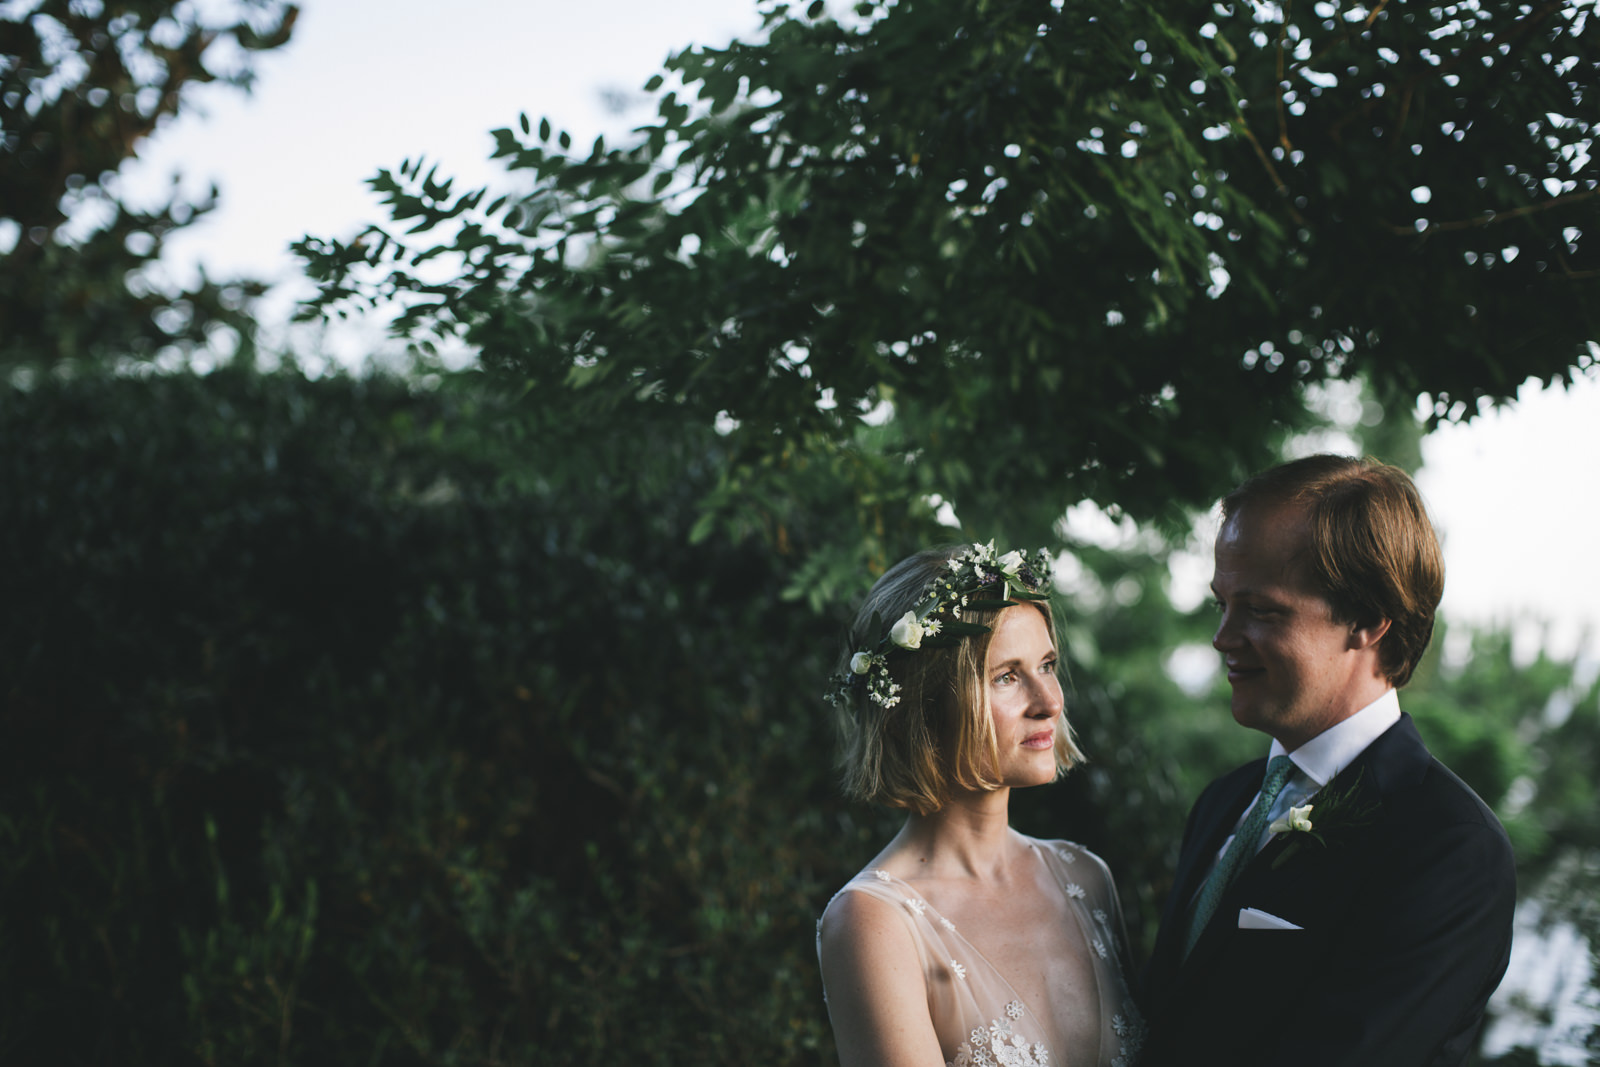 bride and groom's portrait in a garden